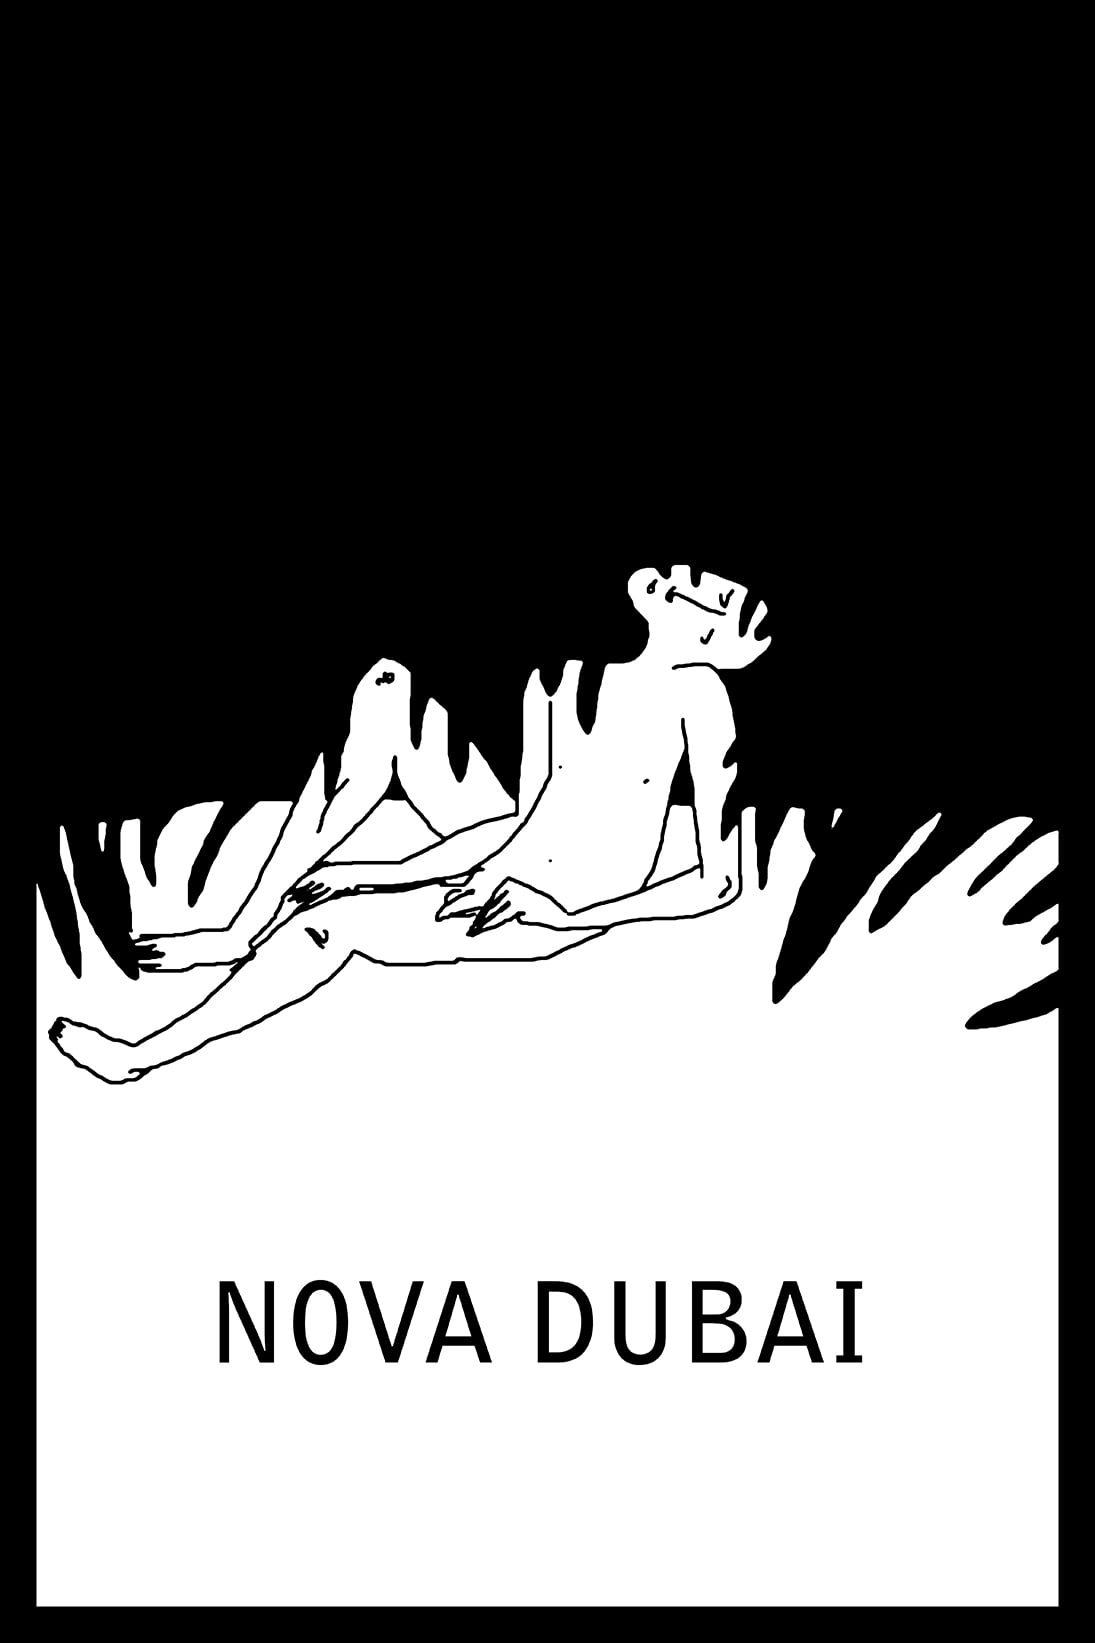 New Dubai (2014)